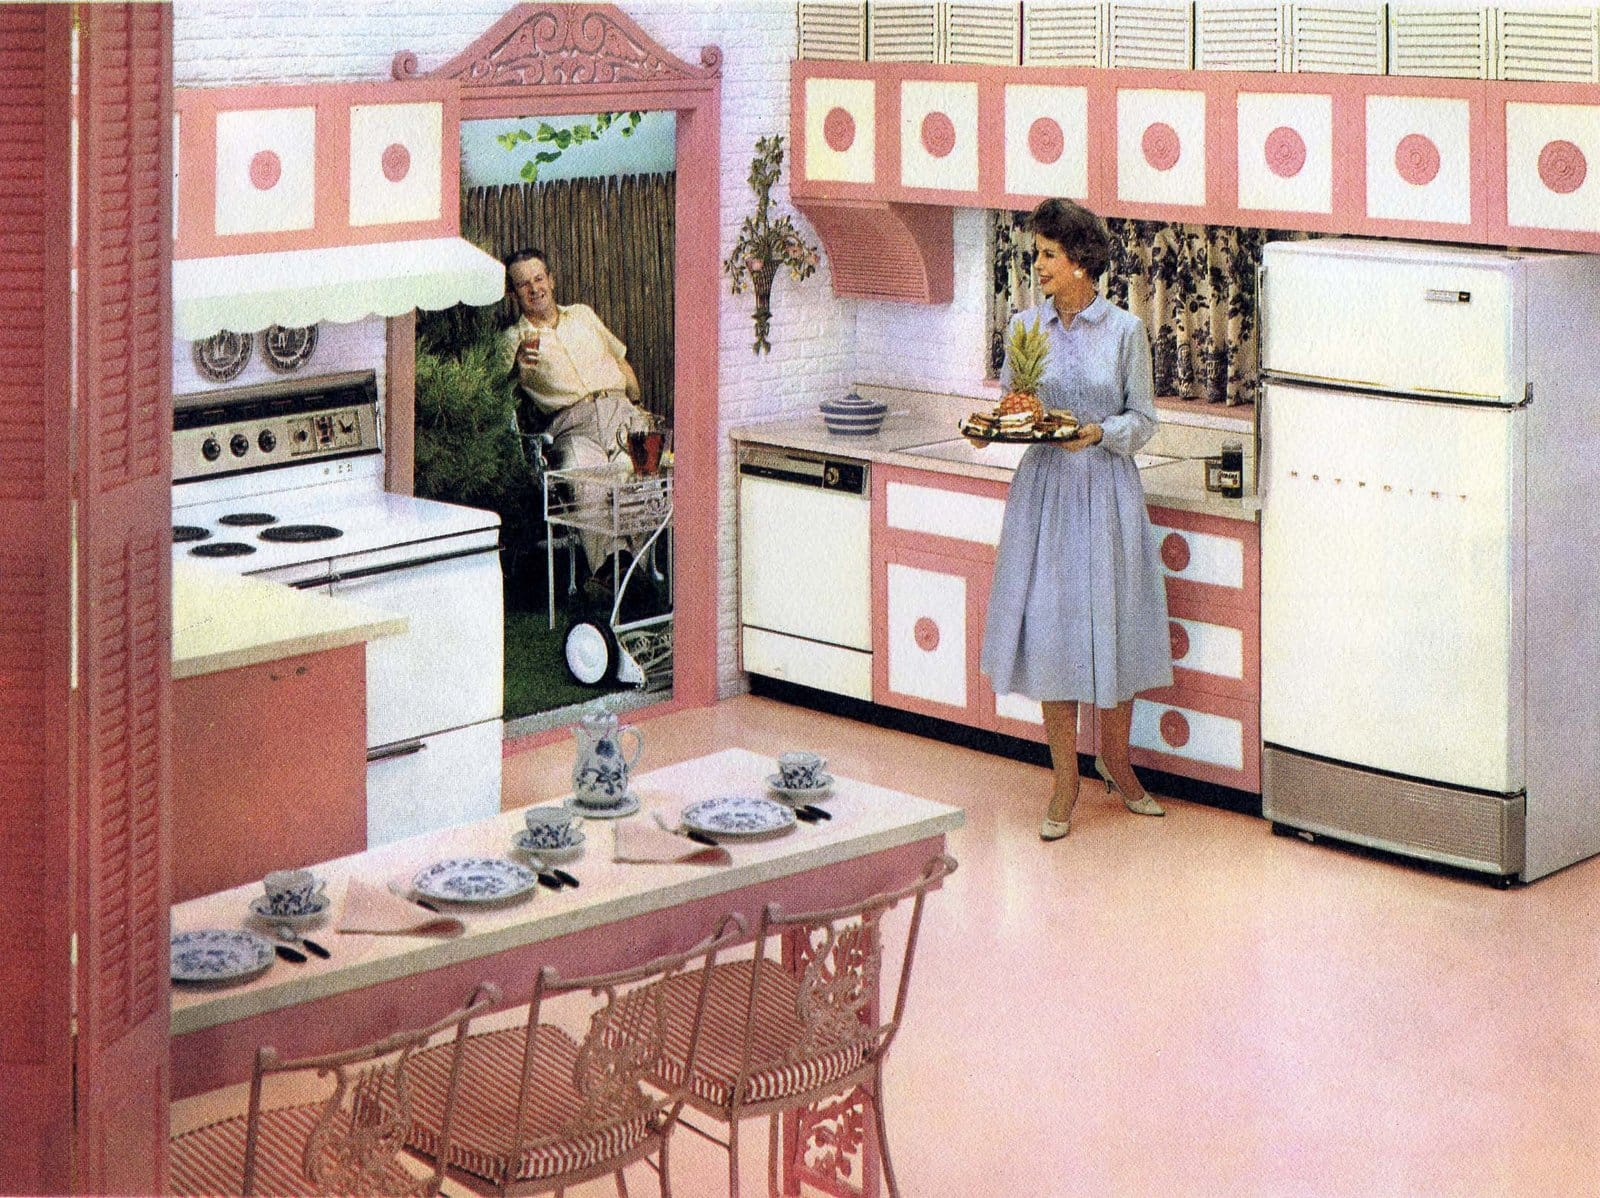 Retro kitchen with pink and white dotted cabinets